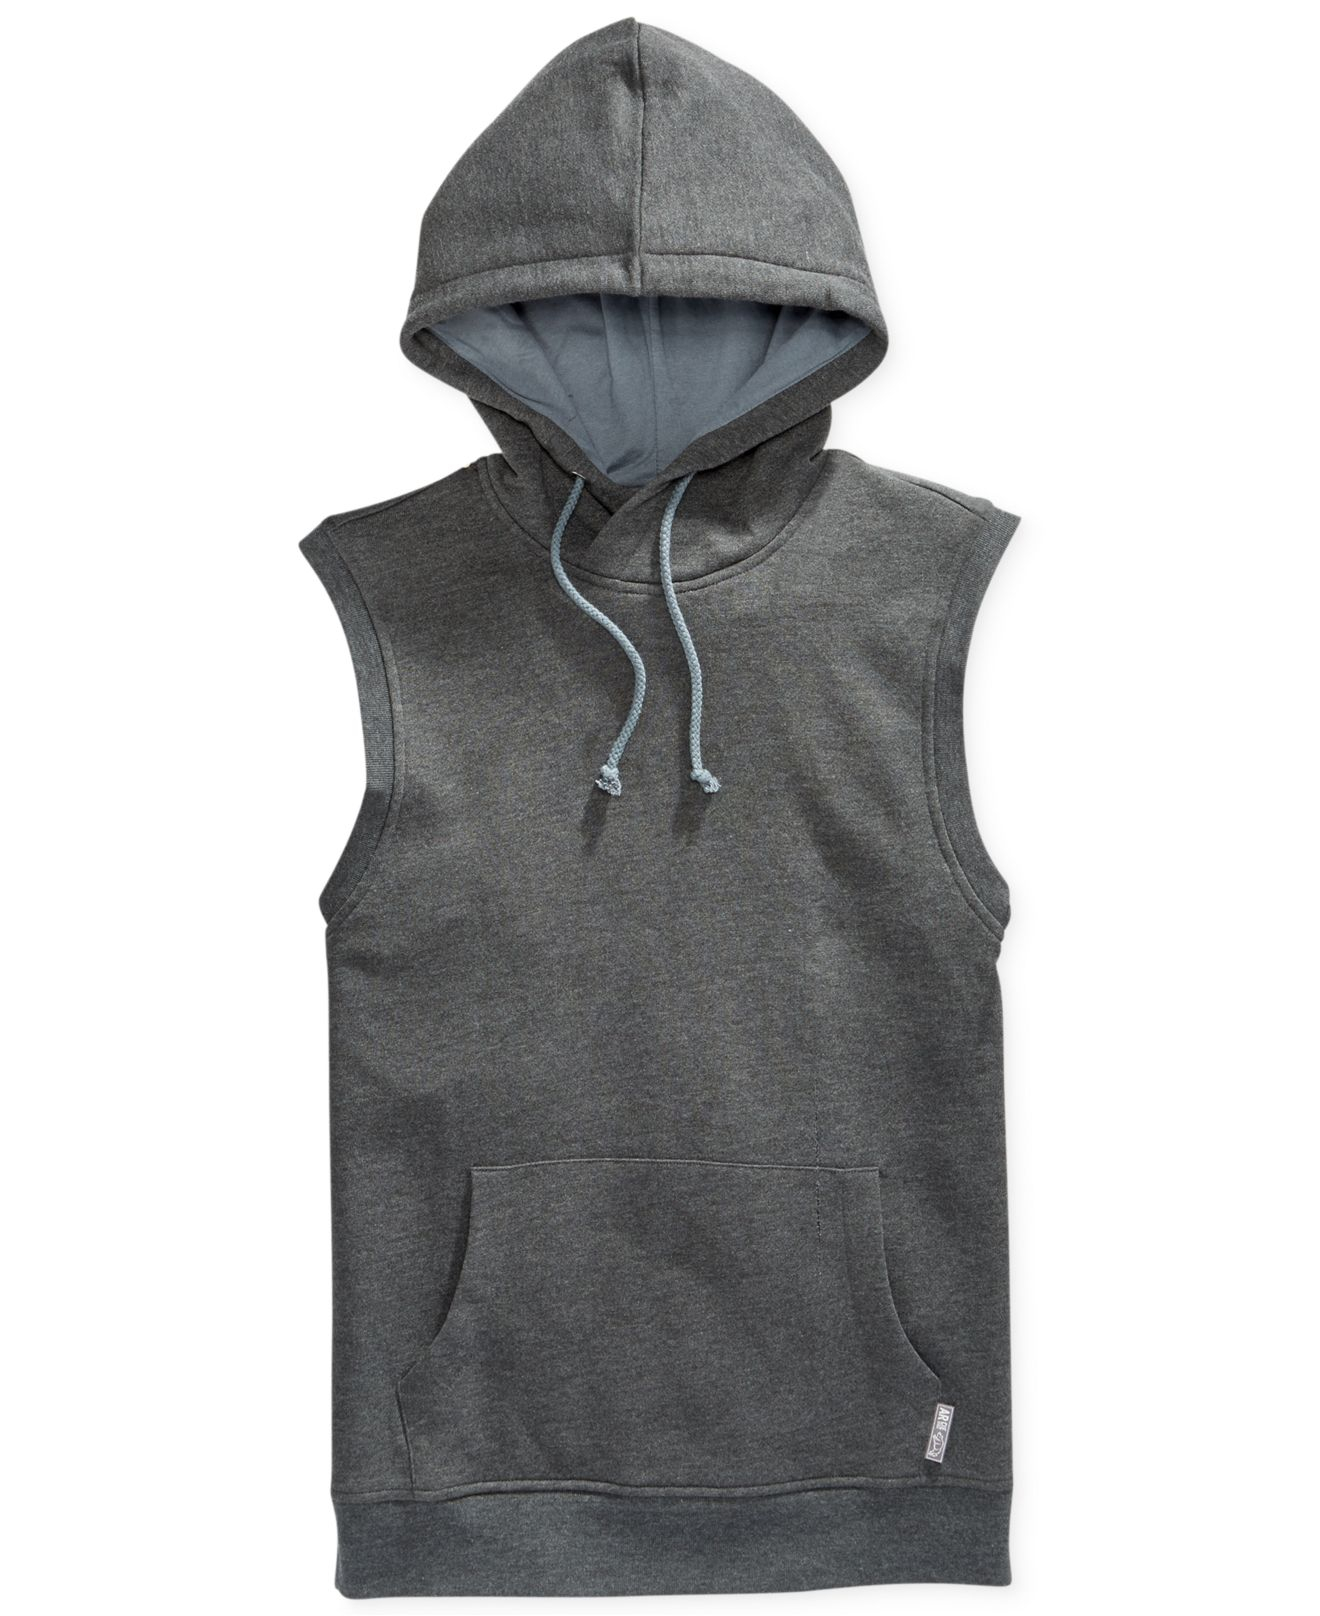 Sleeveless Pullover Hoodie - Baggage Clothing